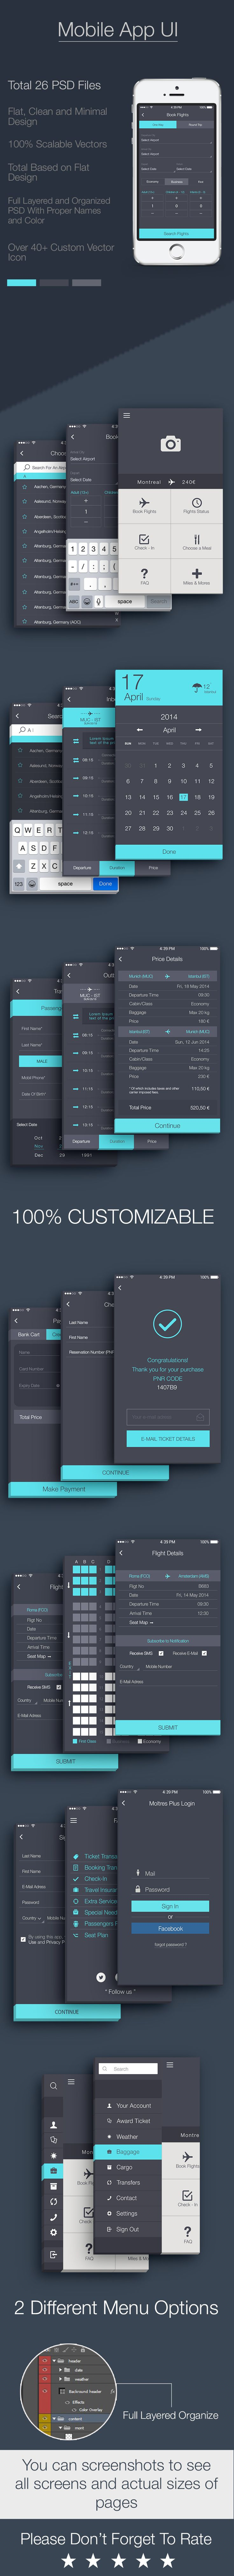 Airlines Mobile App UI on Behance